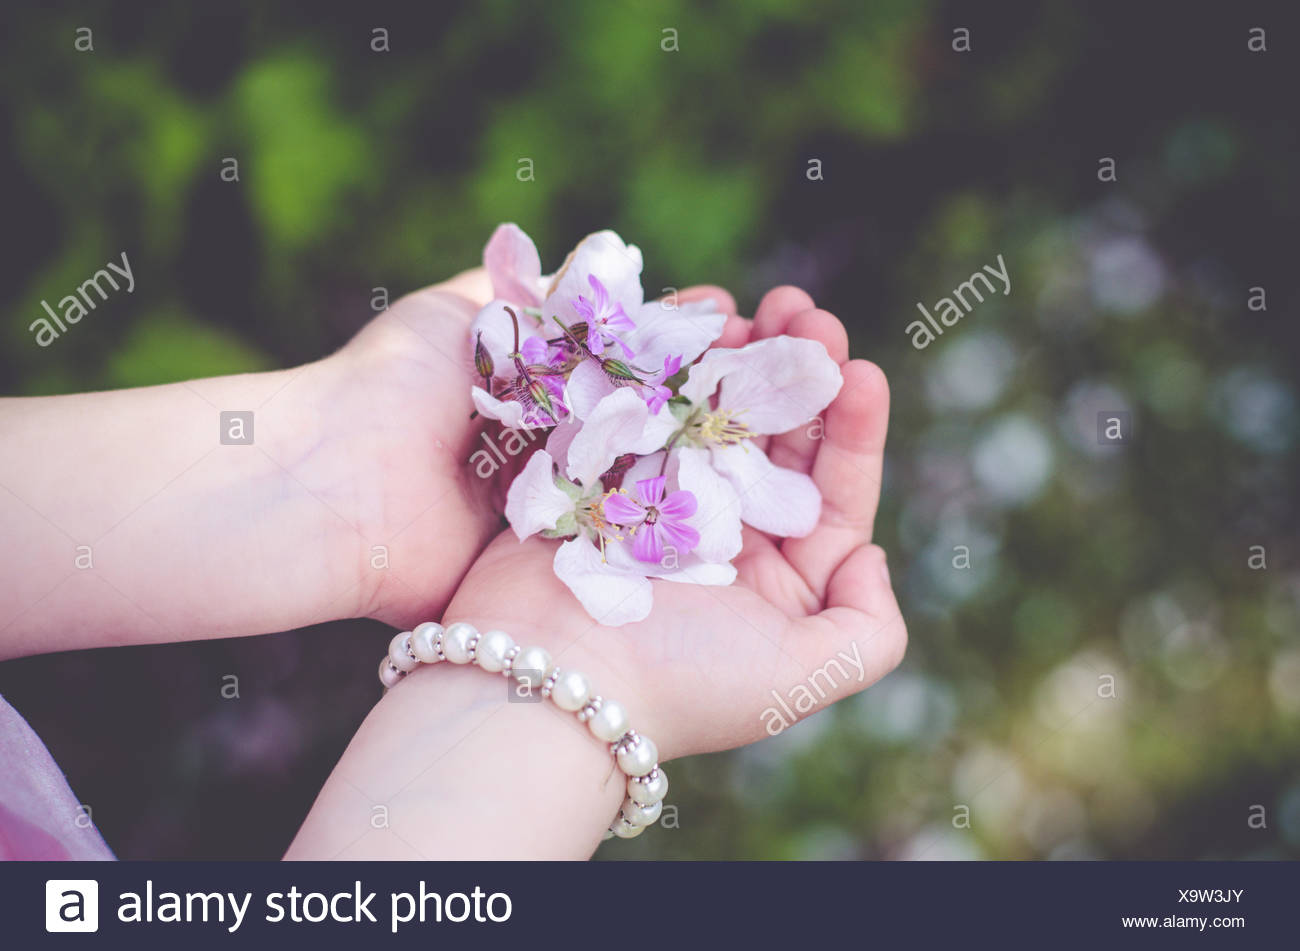 Girl with handful of flowers - Stock Image